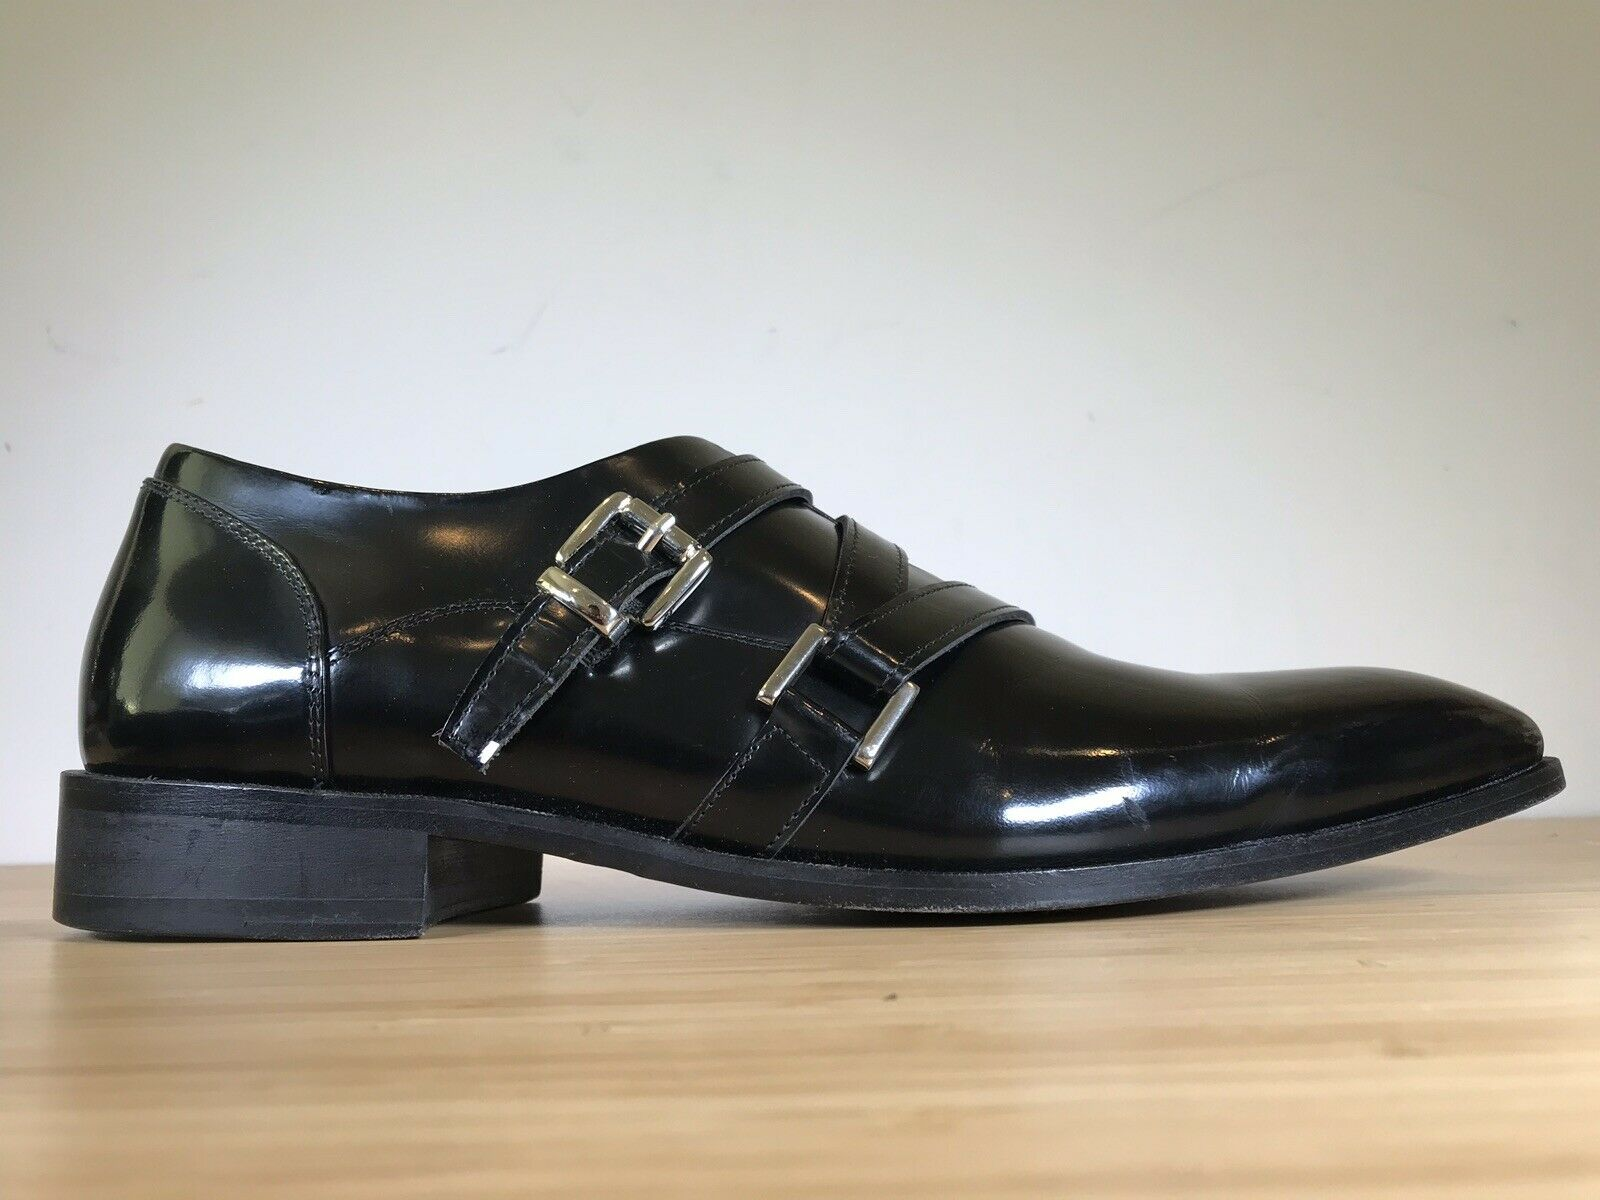 En cuir Paolo Iantorno Monk Strap Homme dress Chaussures Taille 10